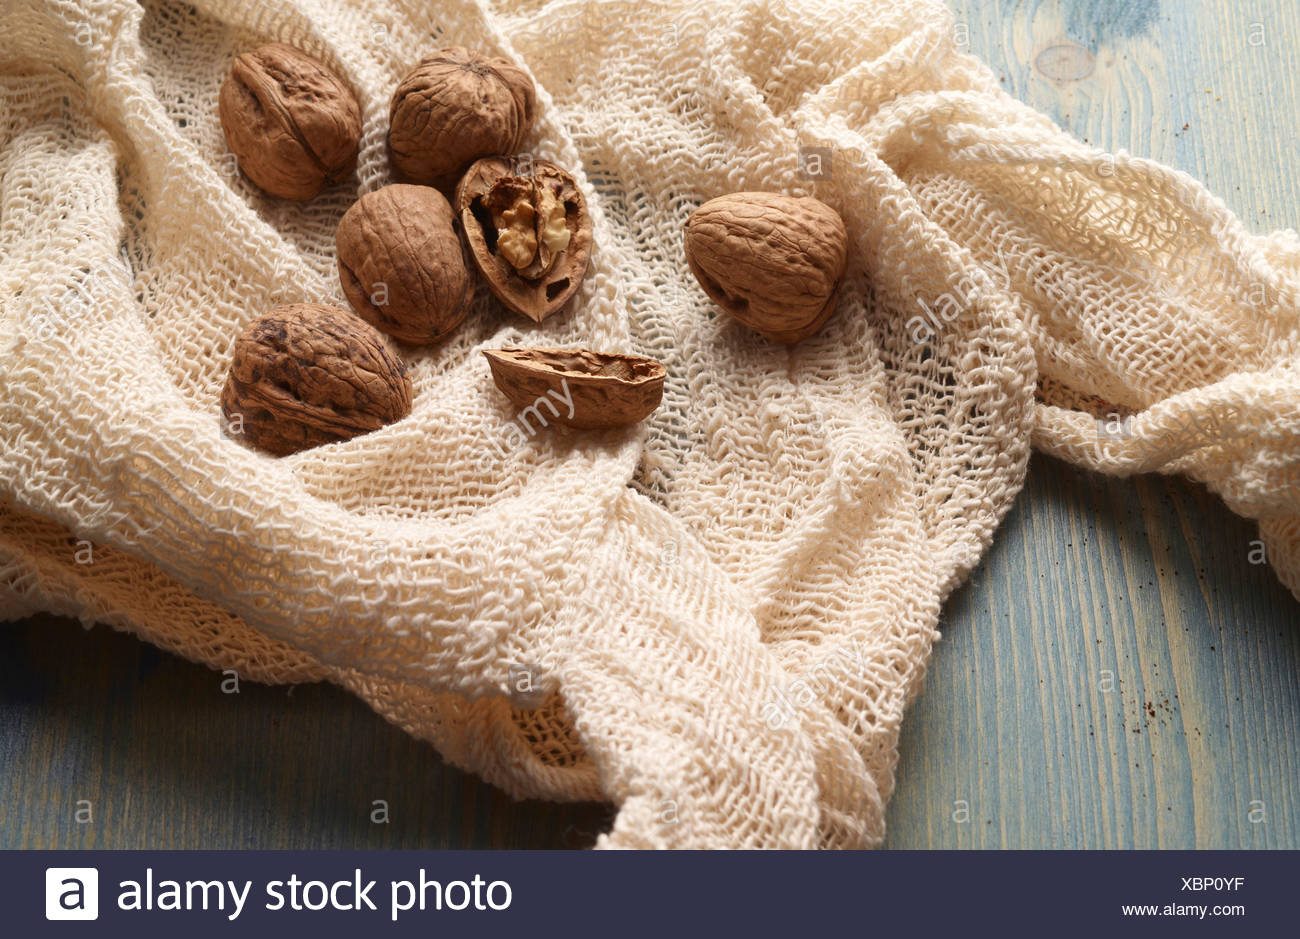 Walnuts in knitted fabric on table - Stock Image